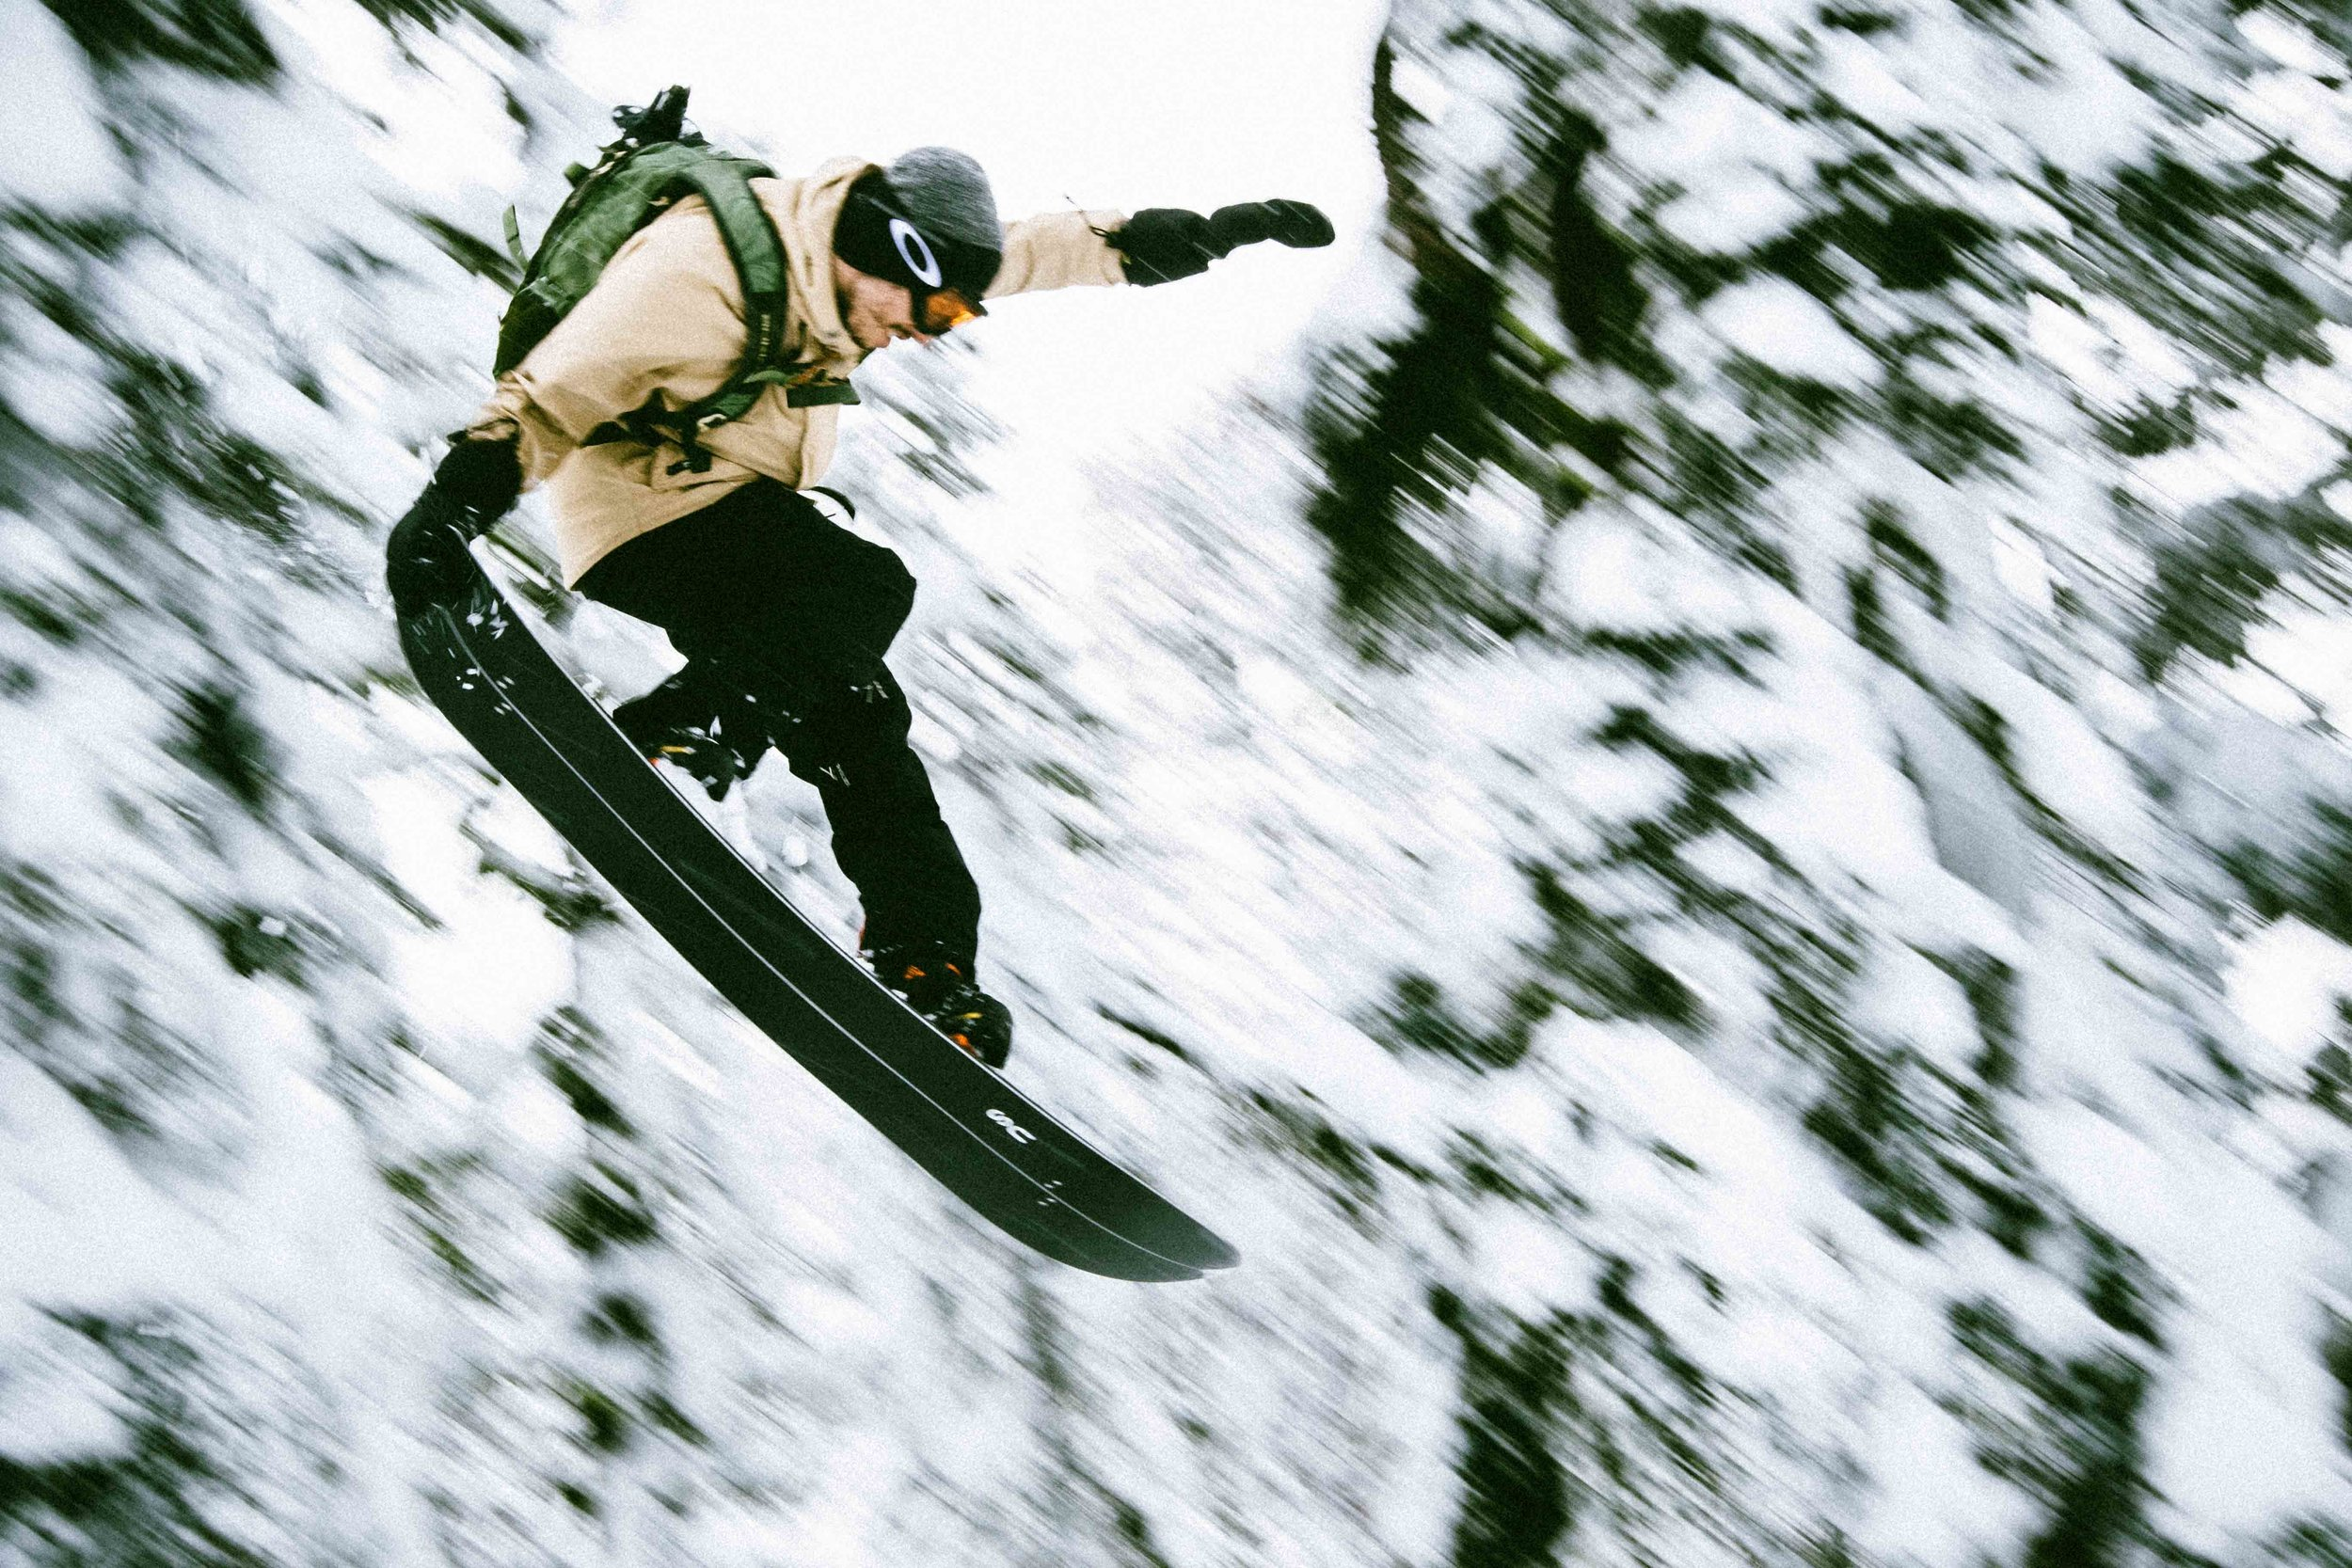 Covert Splitboard - Going places.149. 152. 158. 161